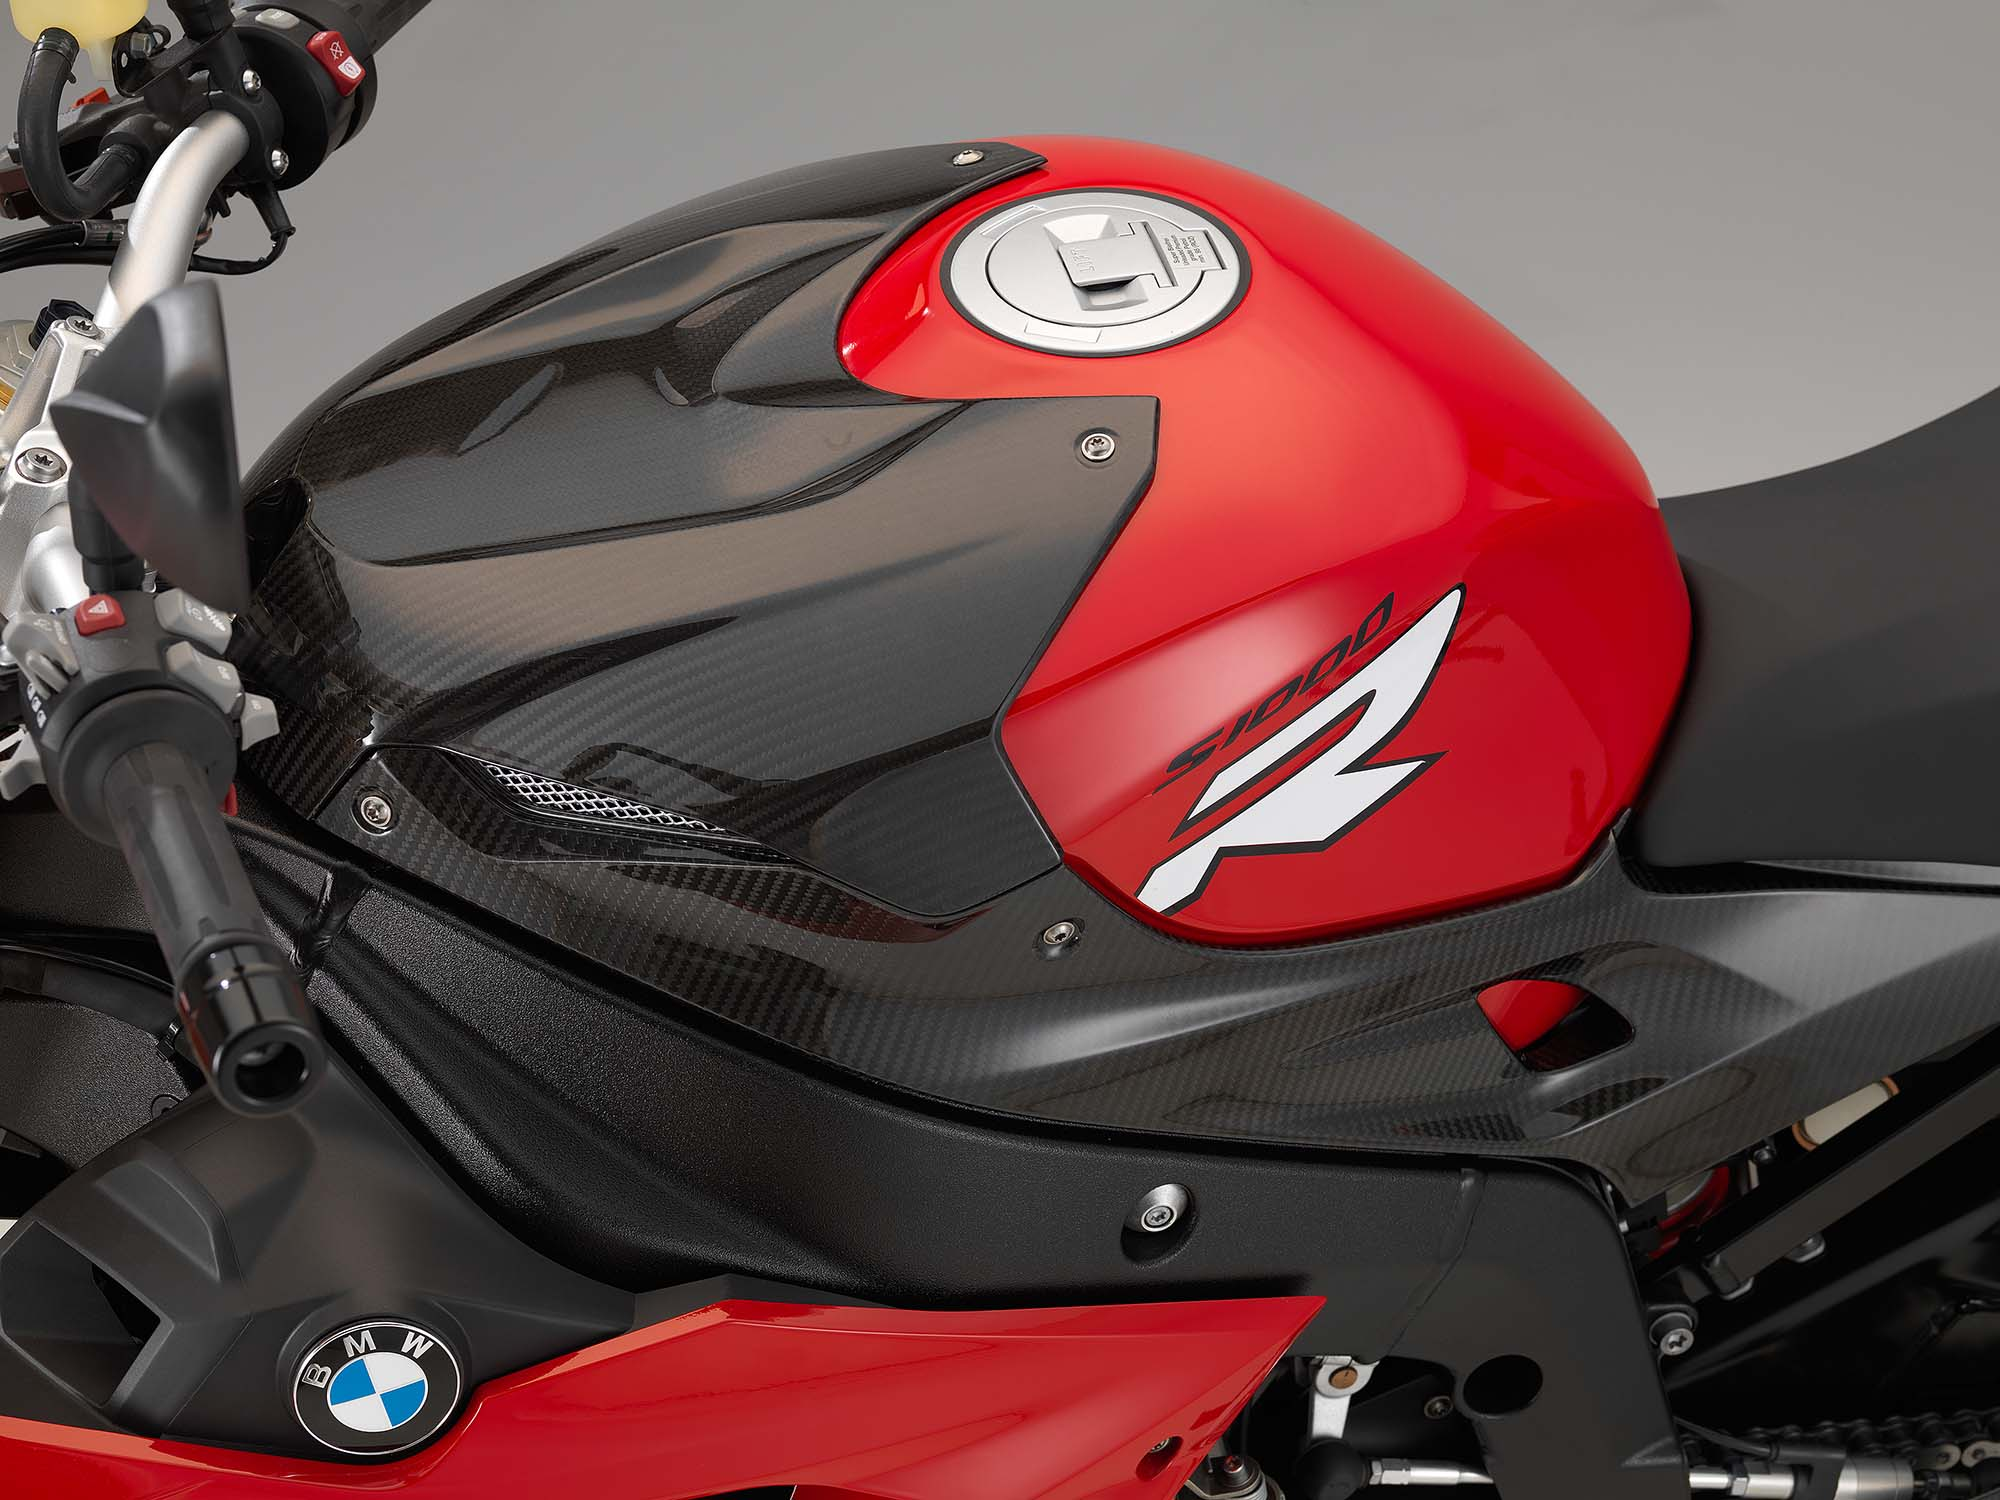 http://www.asphaltandrubber.com/wp-content/gallery/2014-bmw-s1000r/2014-bmw-s1000r-studio-22.jpg